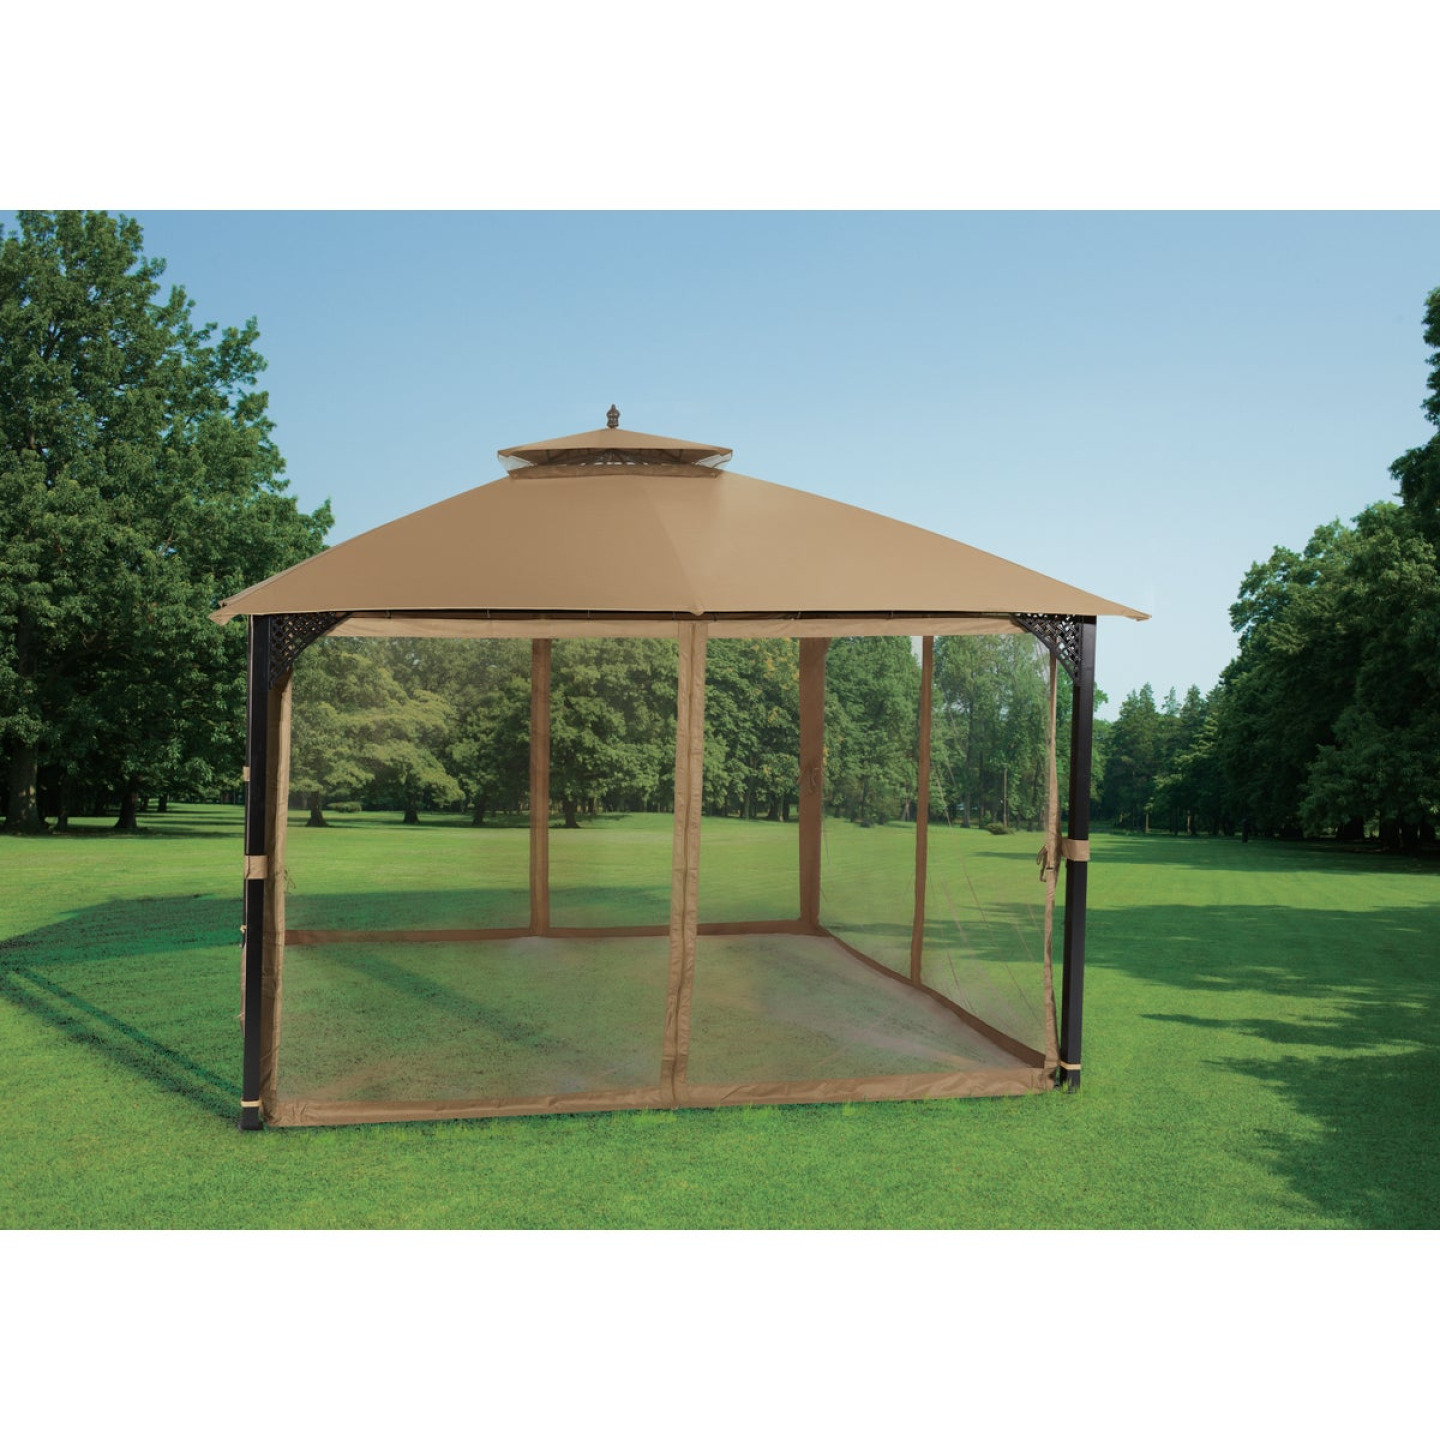 Outdoor Expressions 10 Ft. x 12 Ft. Art Steel Gazebo Image 3